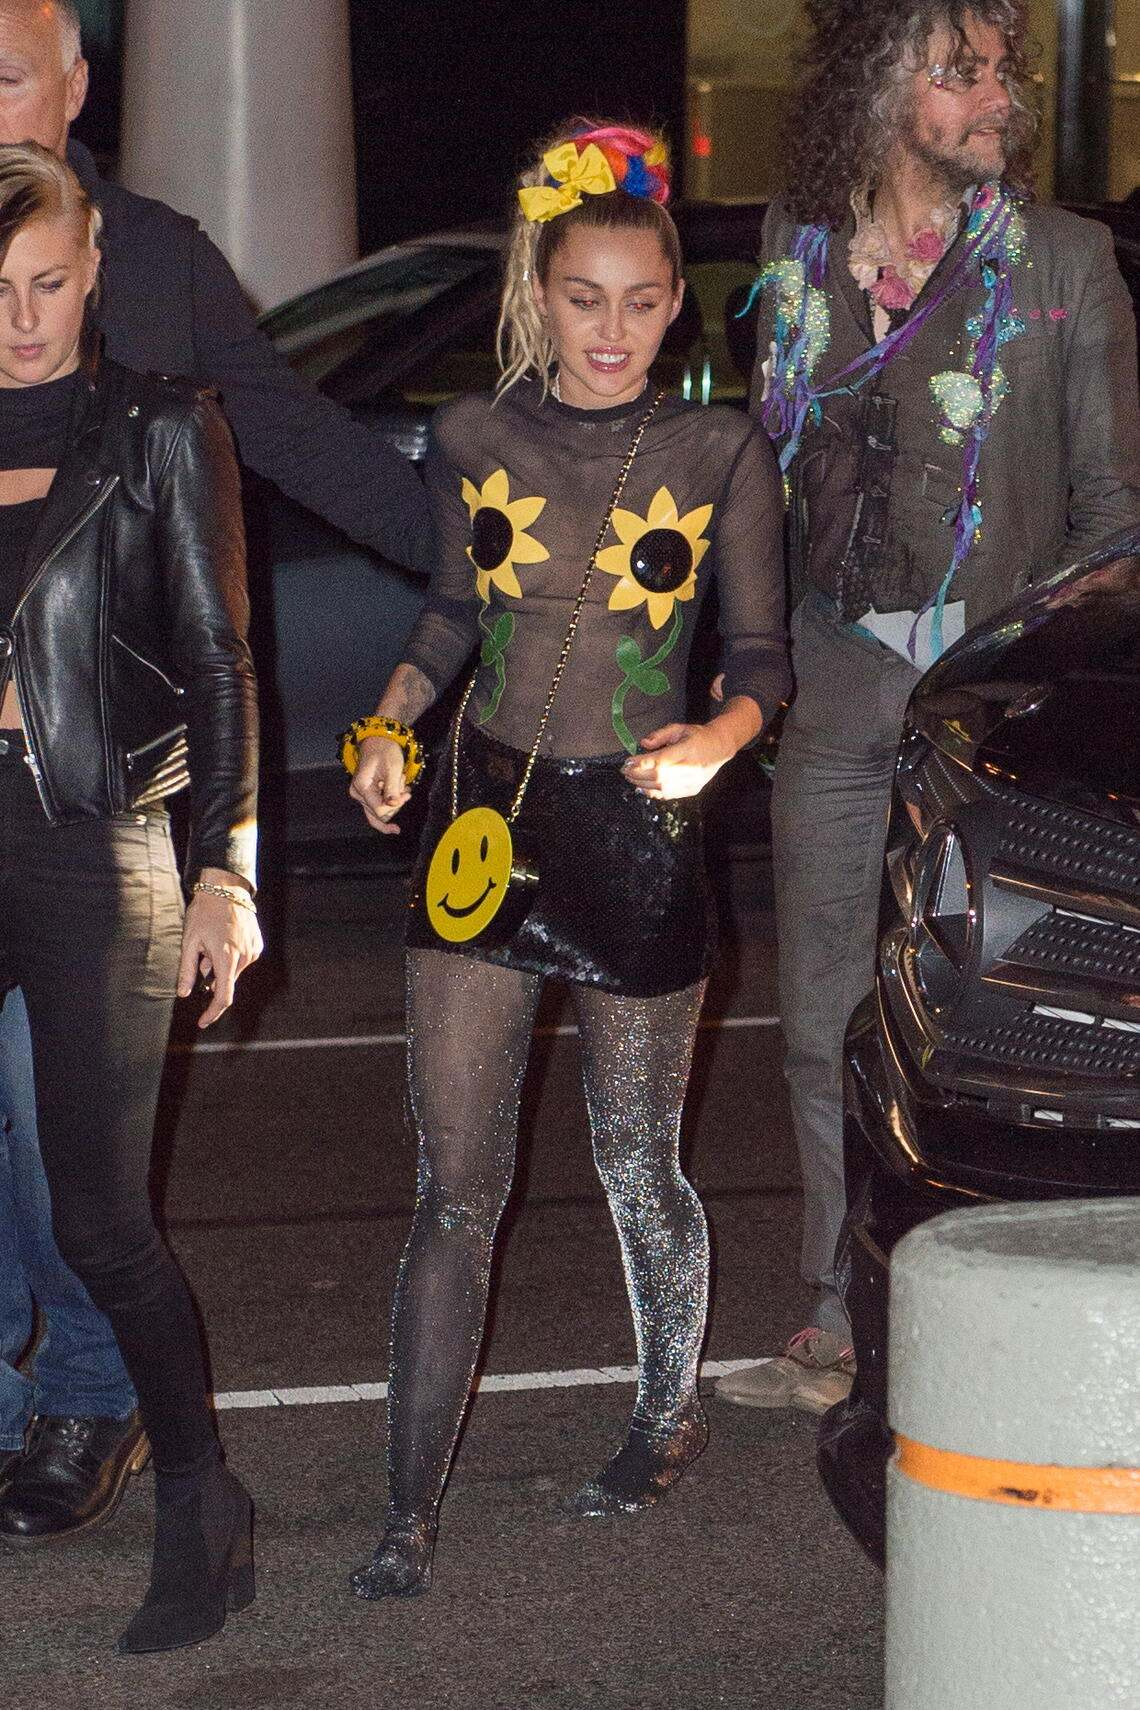 Miley Cyrus parties with friends after the SNL after party at hip after hours spot, Happy Ending in a sheer outfit.<P>Pictured: Miley Cyrus<B>Ref: SPL1140059  041015  </B><BR/>Picture by: @PapCultureNYC / Splash News<BR/></P><P><B>Splash News and Pictures</B><BR/>Los Angeles:	310-821-2666<BR/>New York:	212-619-2666<BR/>London:	870-934-2666<BR/>photodesk@splashnews.com<BR/></P> *** Local Caption *** World Rights